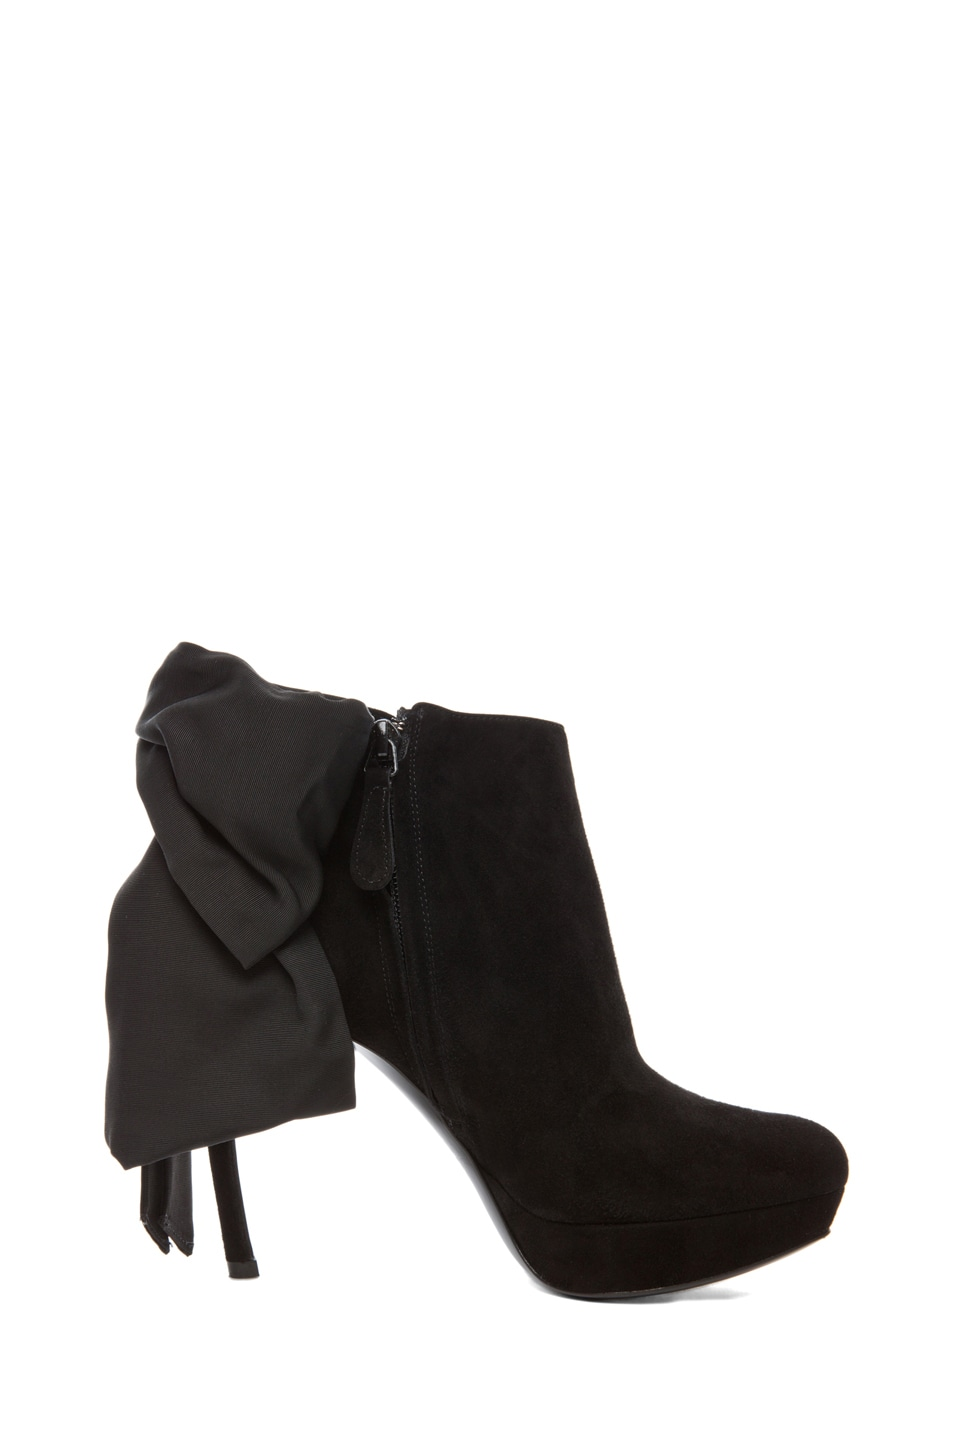 Image 5 of Alexander McQueen Bow Bootie in Black